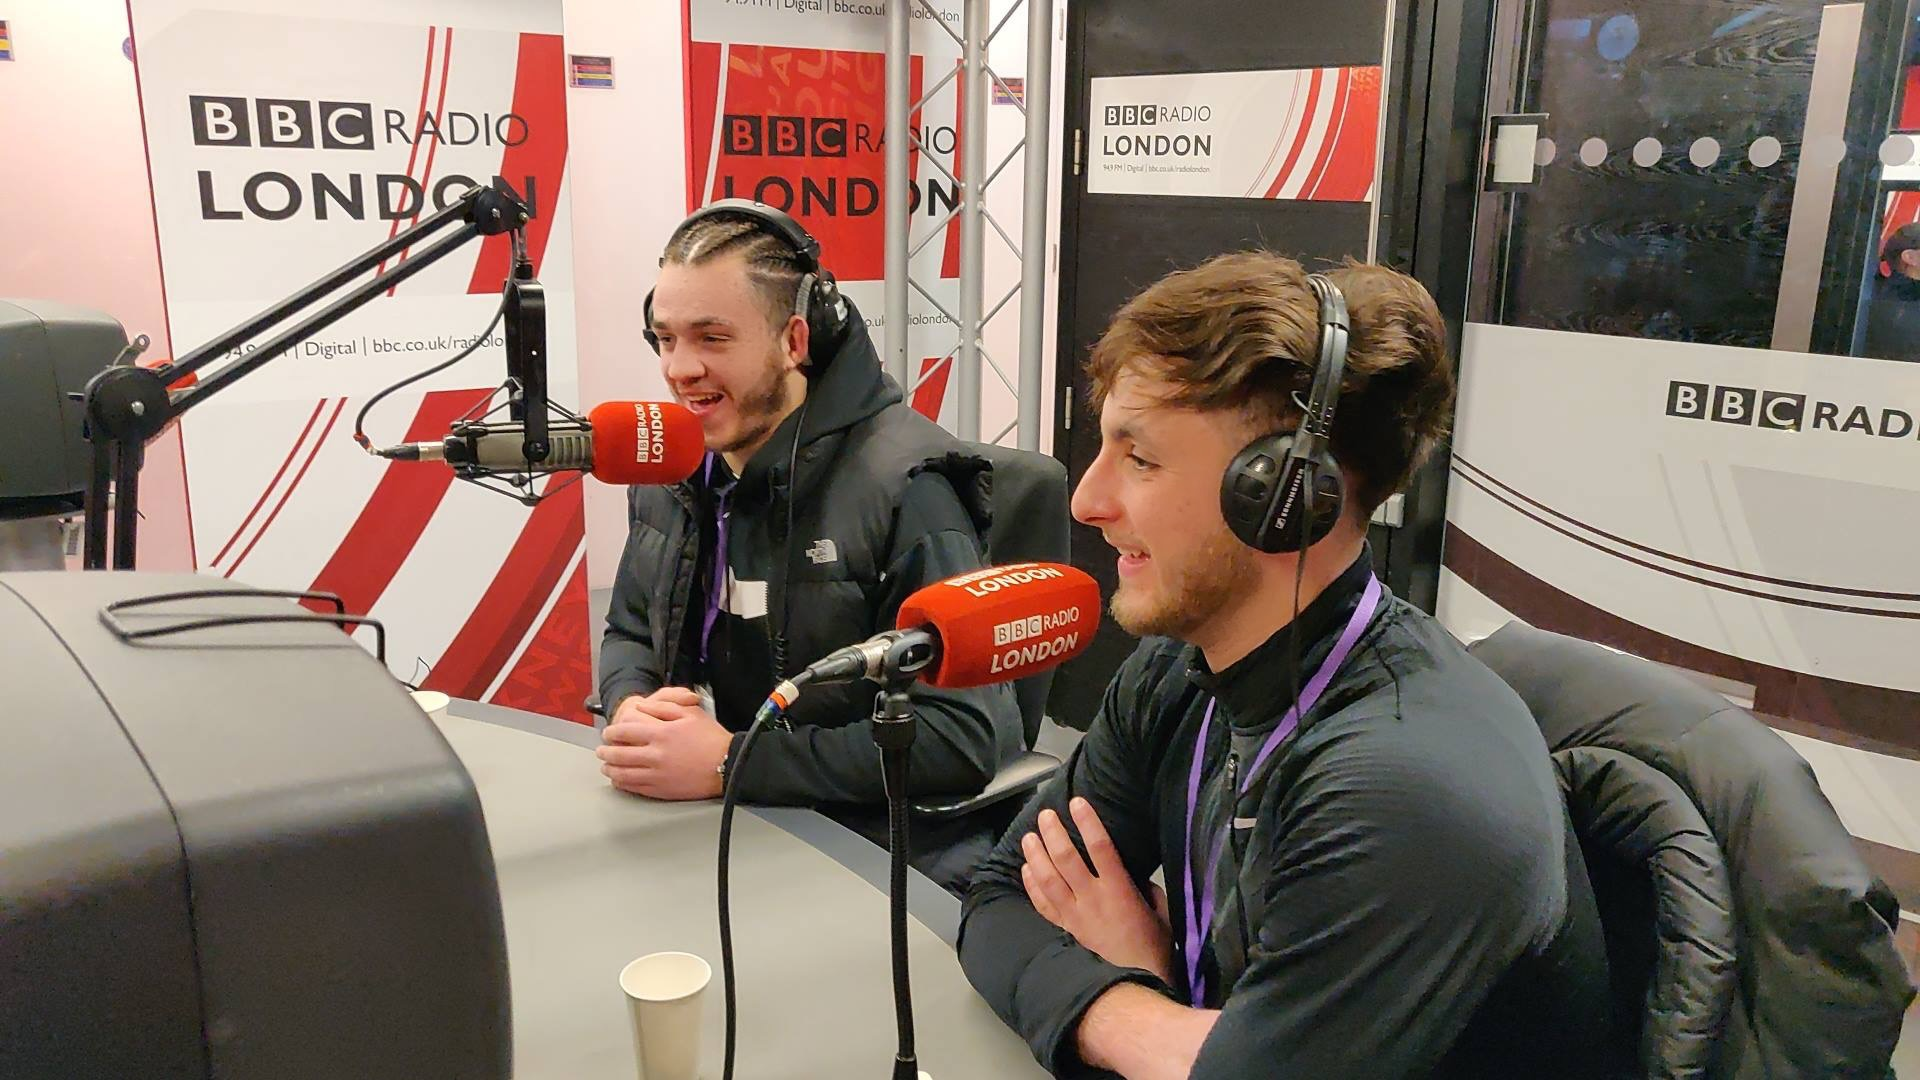 THE BOYS ON THE RADIO -